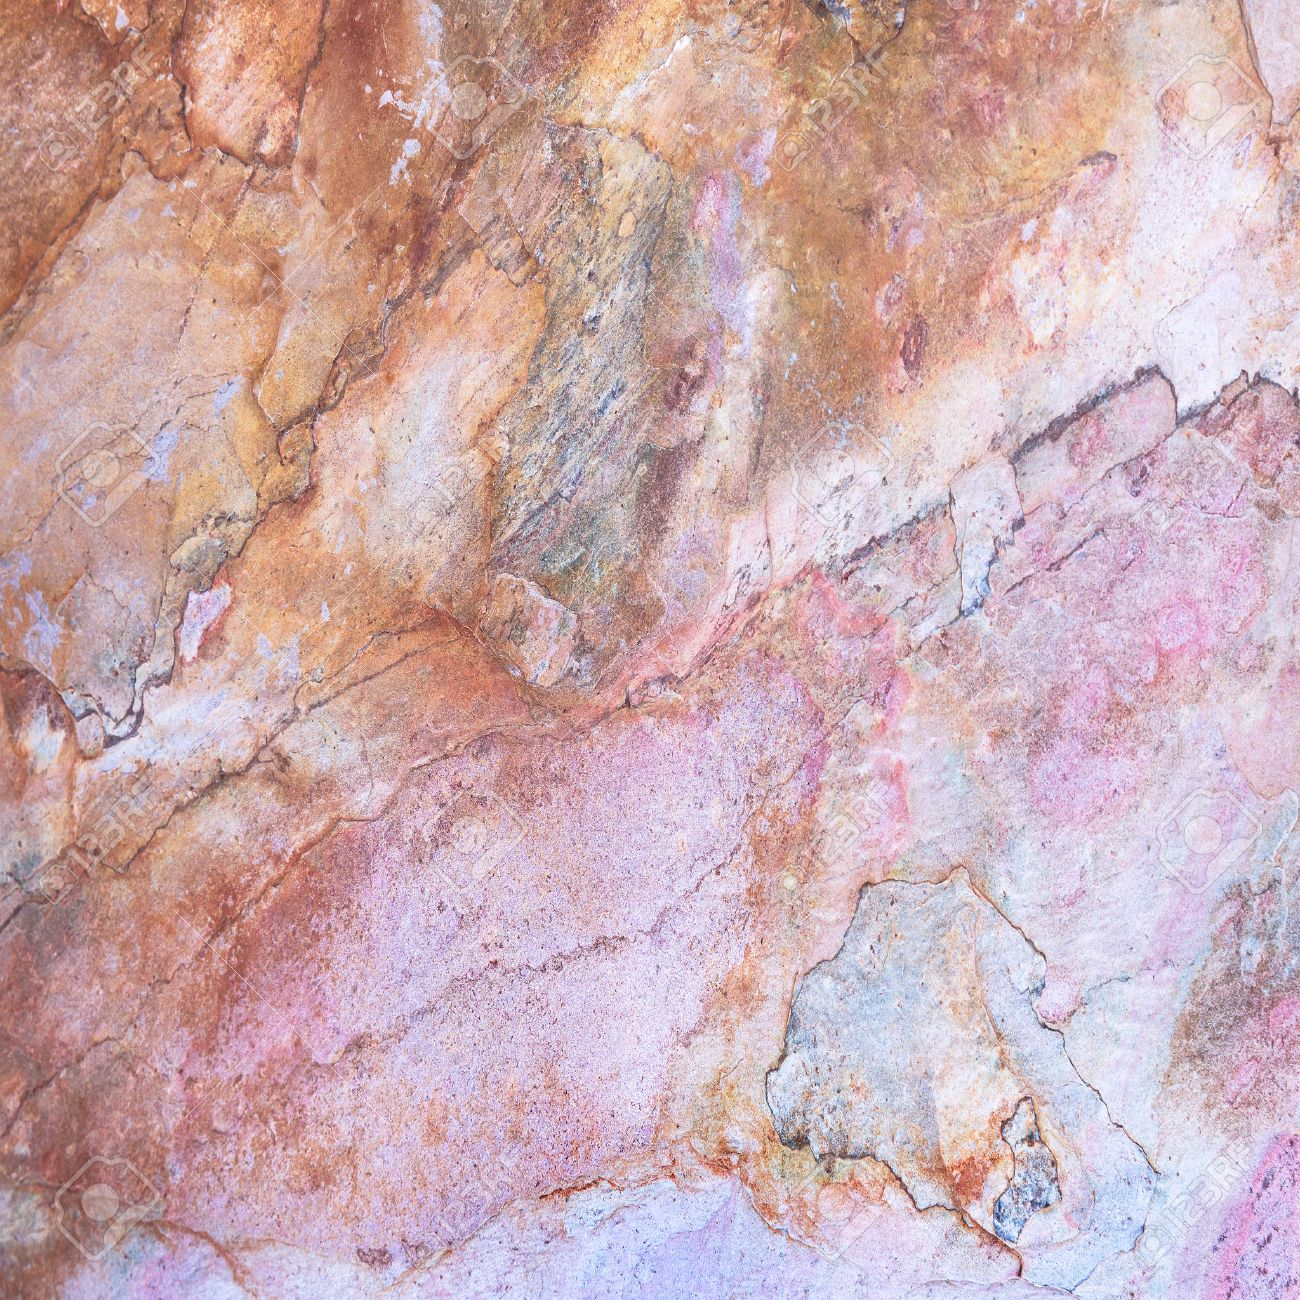 Beautiful Wallpaper Marble Colorful - 26698323-marble-background-light-pink-and-orange-colors-pattern-textured-wallpaper-expensive-material-for-ext  Photograph_619864.jpg